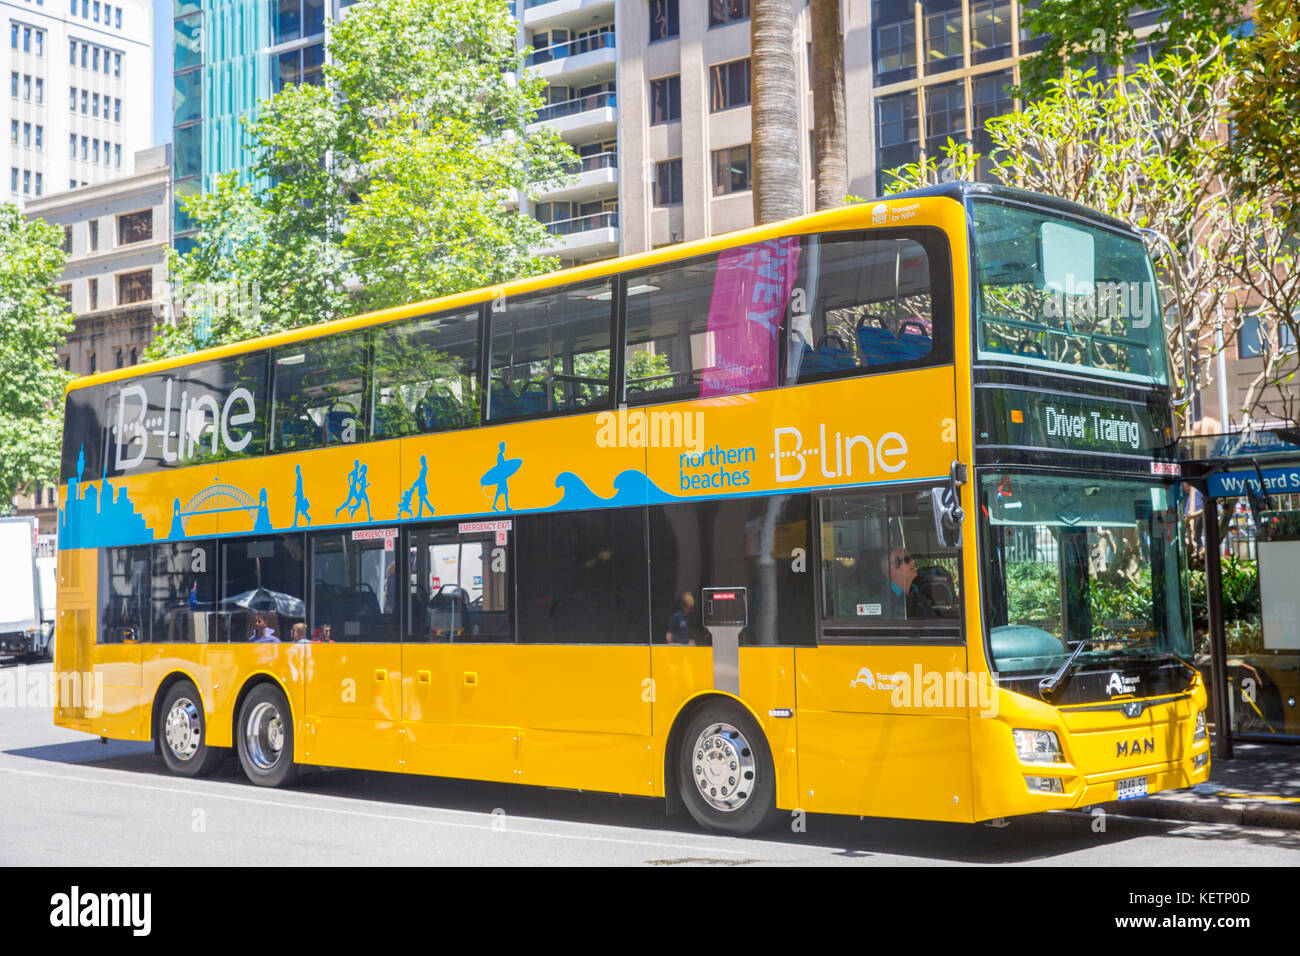 new sydney yellow double decker bus for the b line bus service route